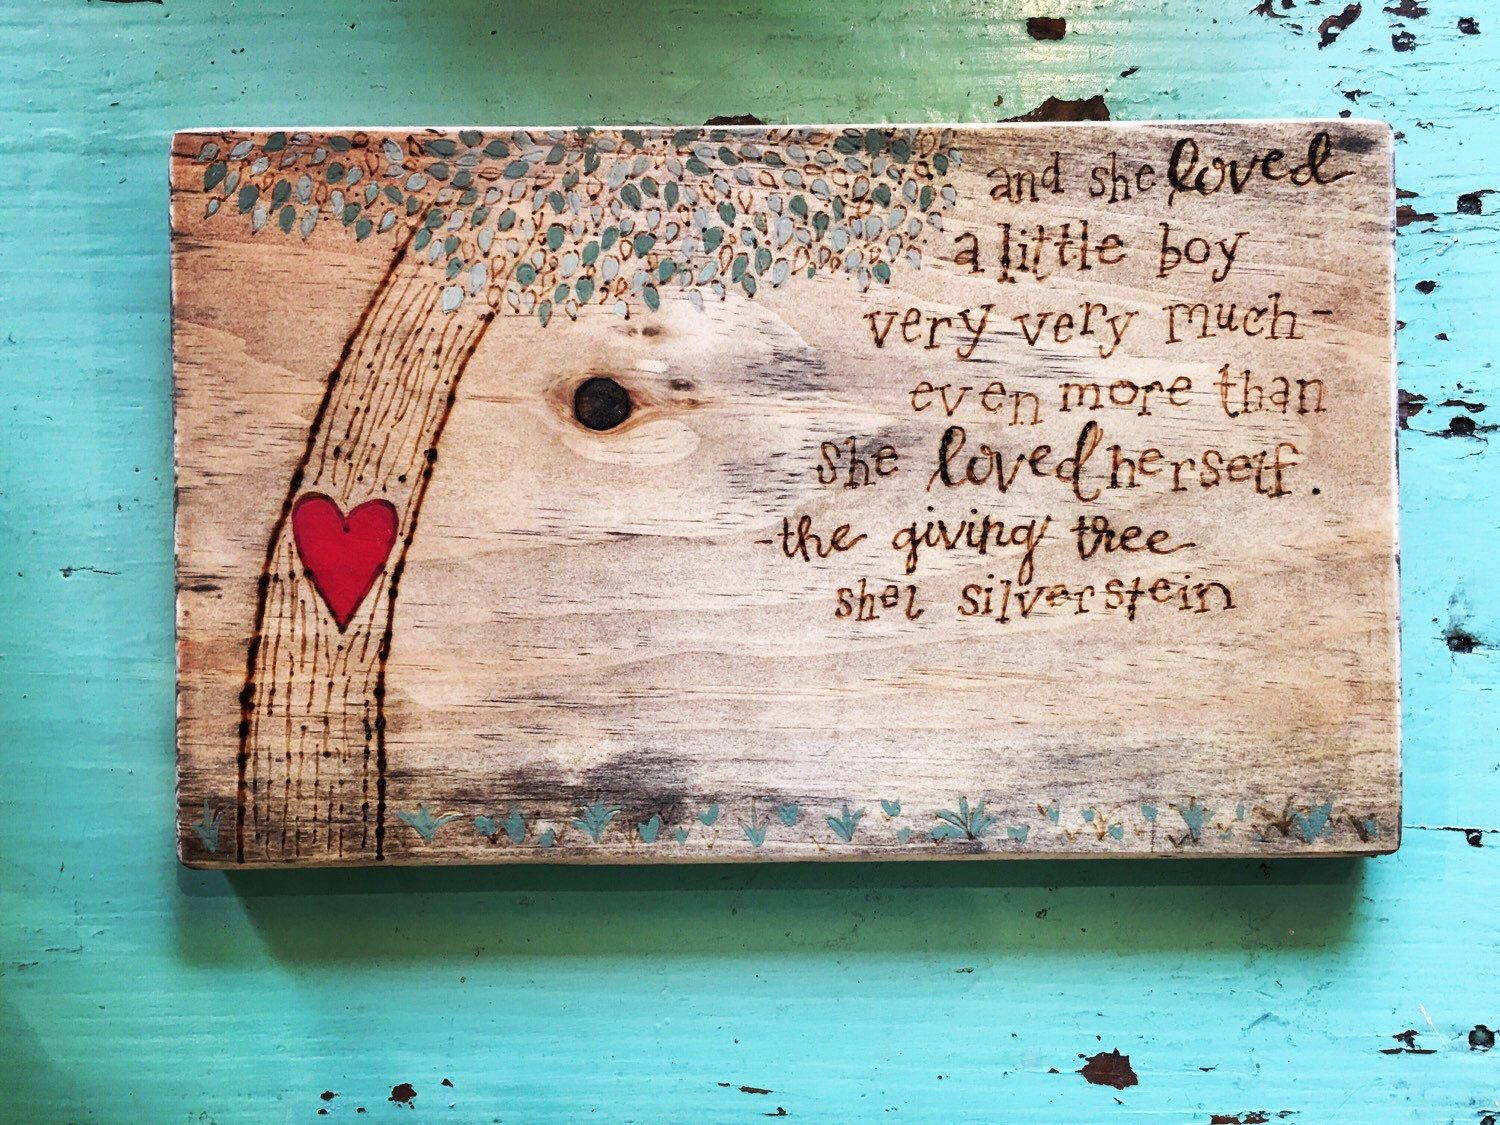 Giving Tree Shel Silverstein Quotes: Hand Lettered & Wood Burned Shel Silverstein, The Giving